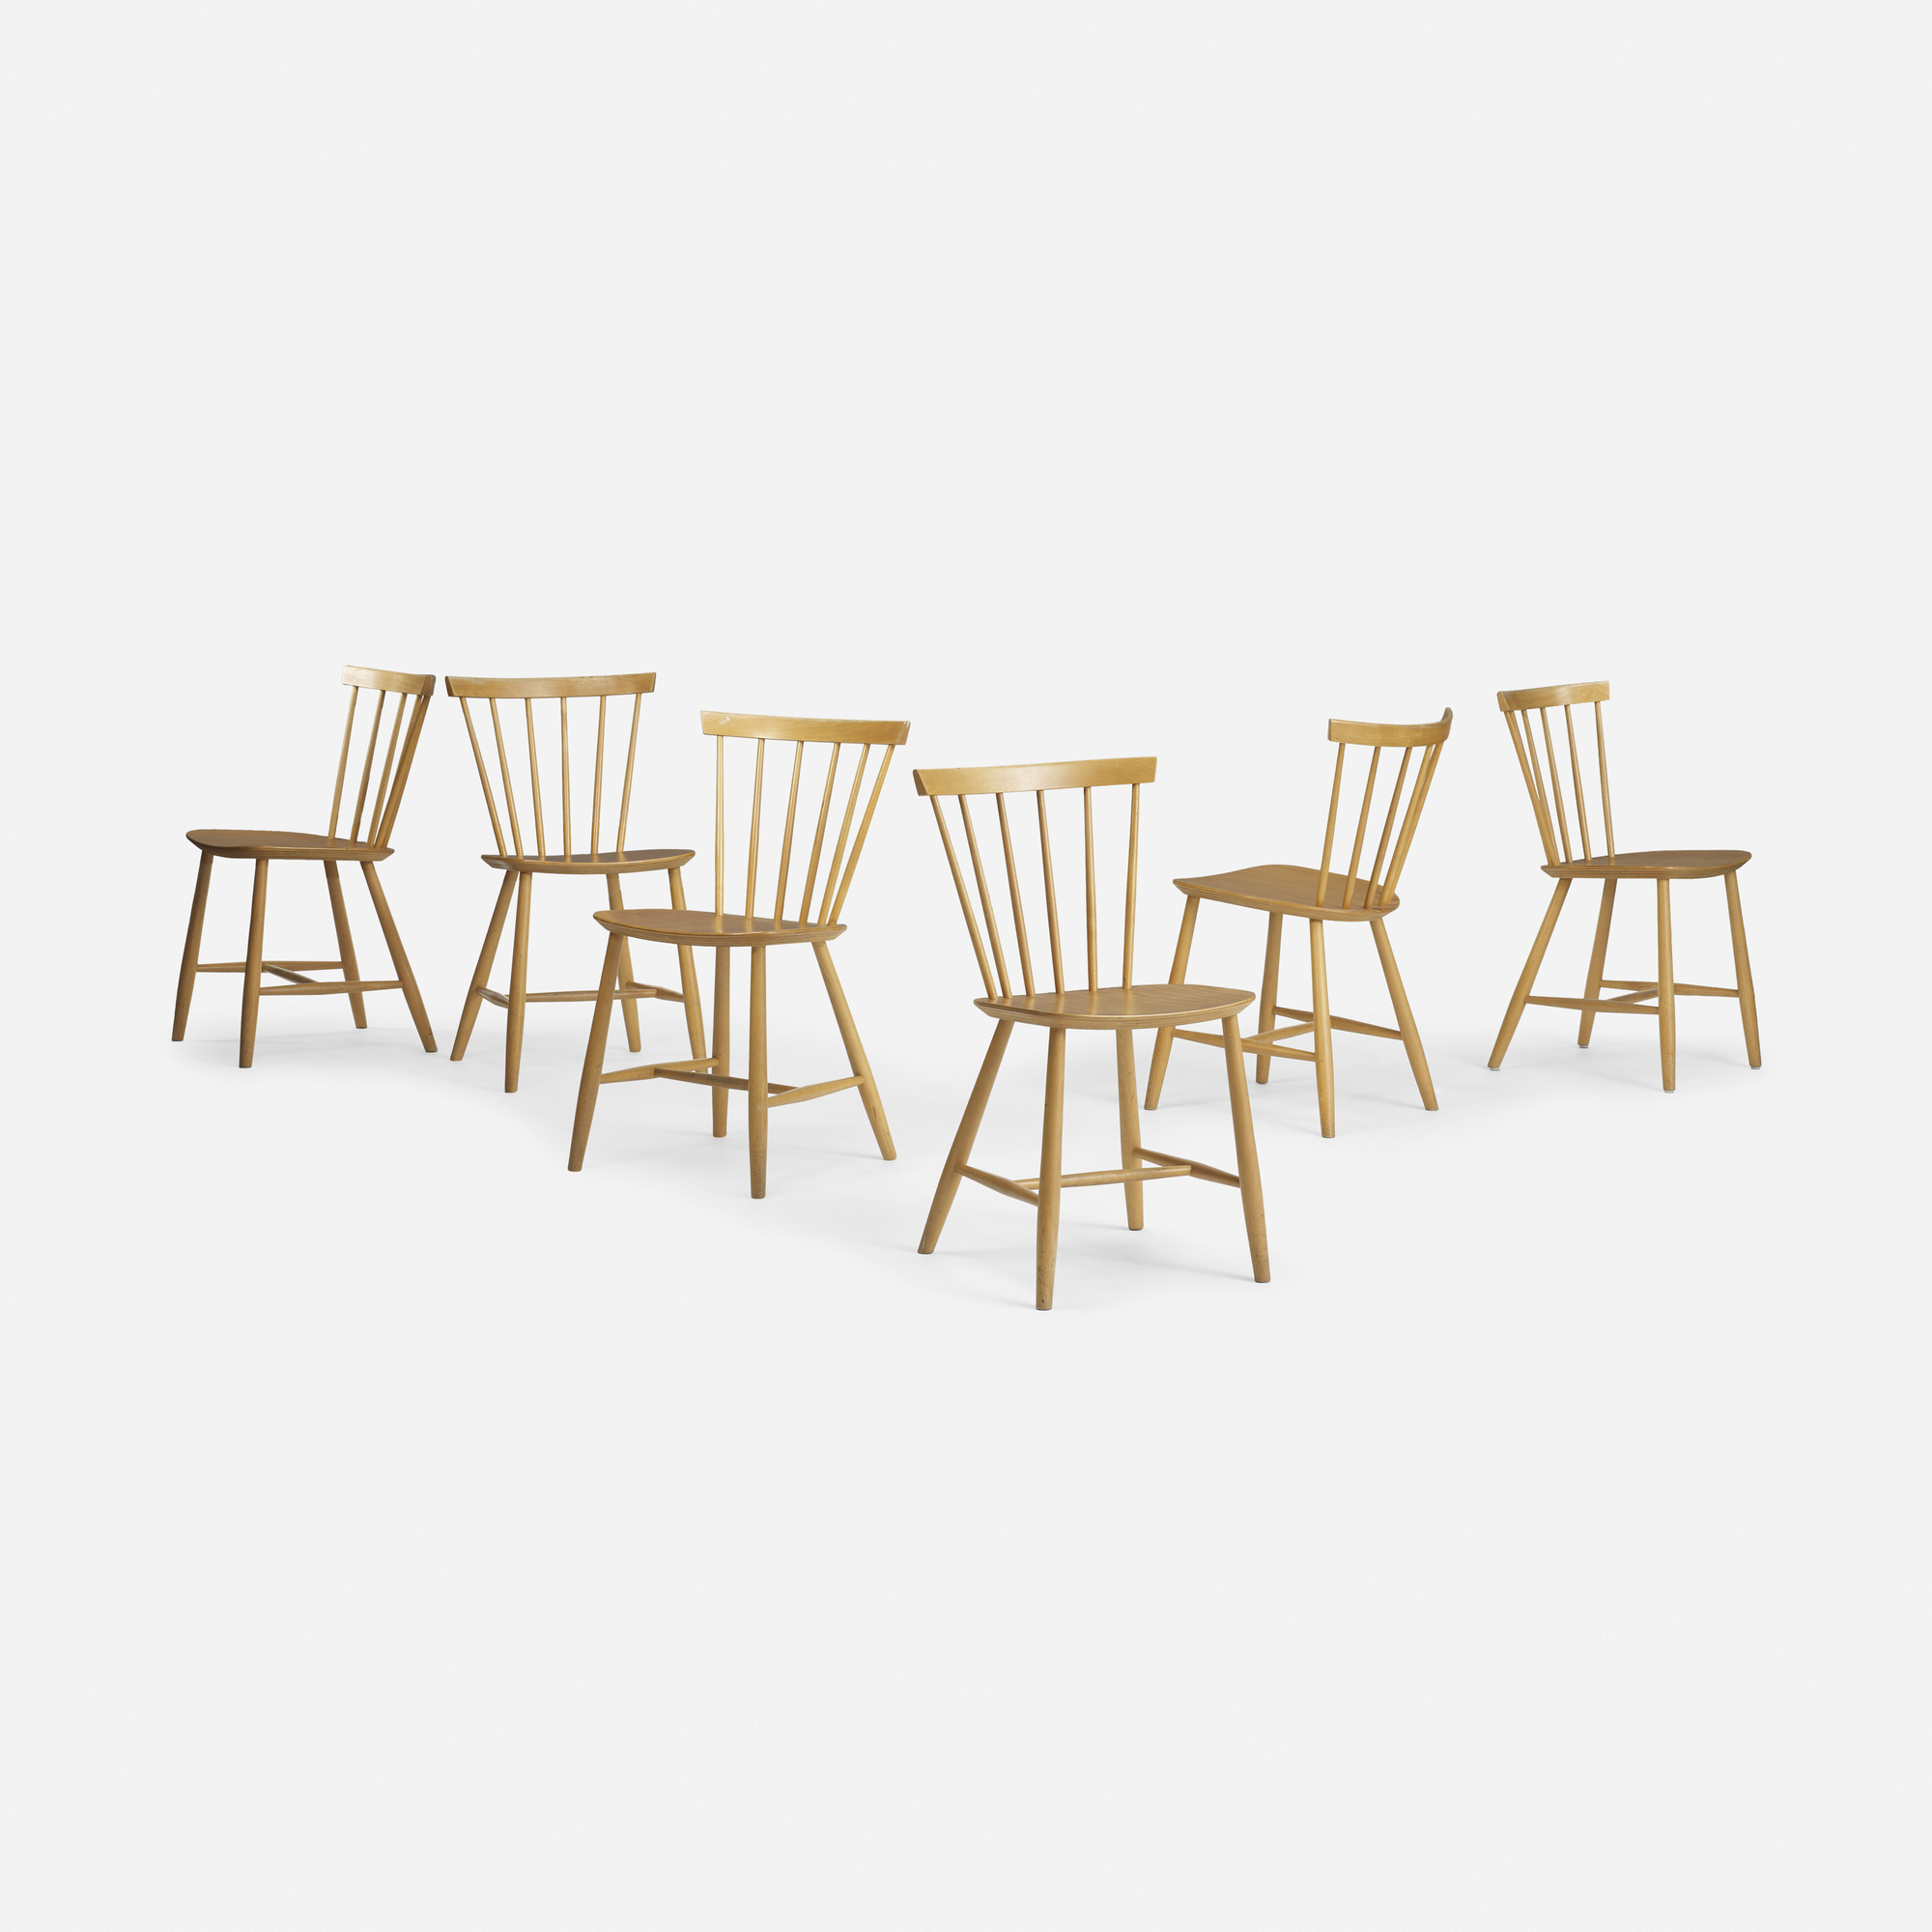 279: Poul Volther / dining chairs model J46, set of six (1 of 4)